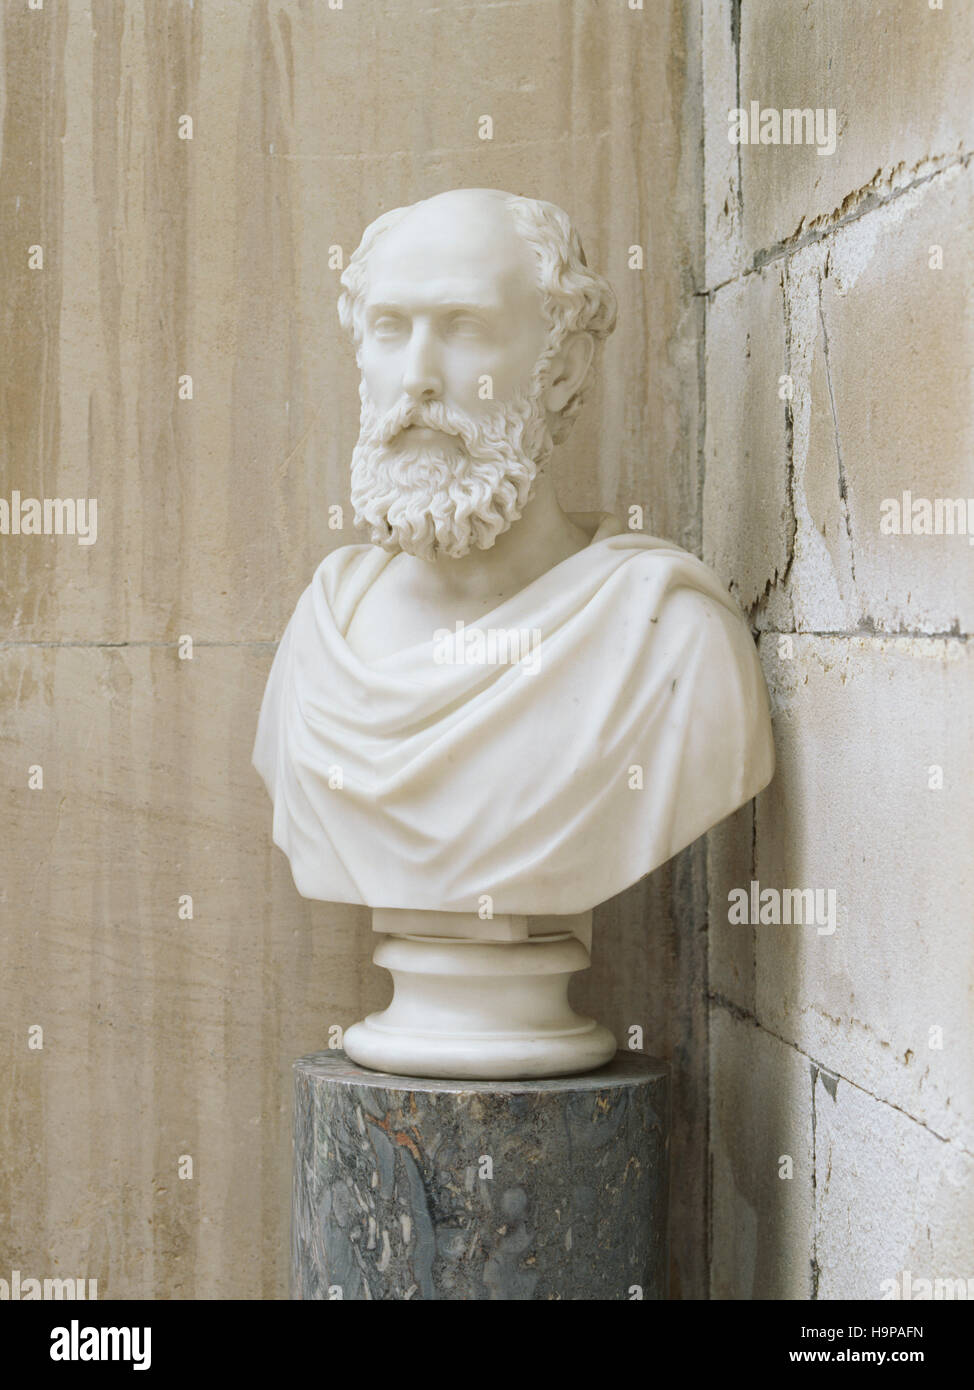 Bust (C19th English) of William Henry Pole-Carew (1811-88) in the Porch at Antony House. - Stock Image